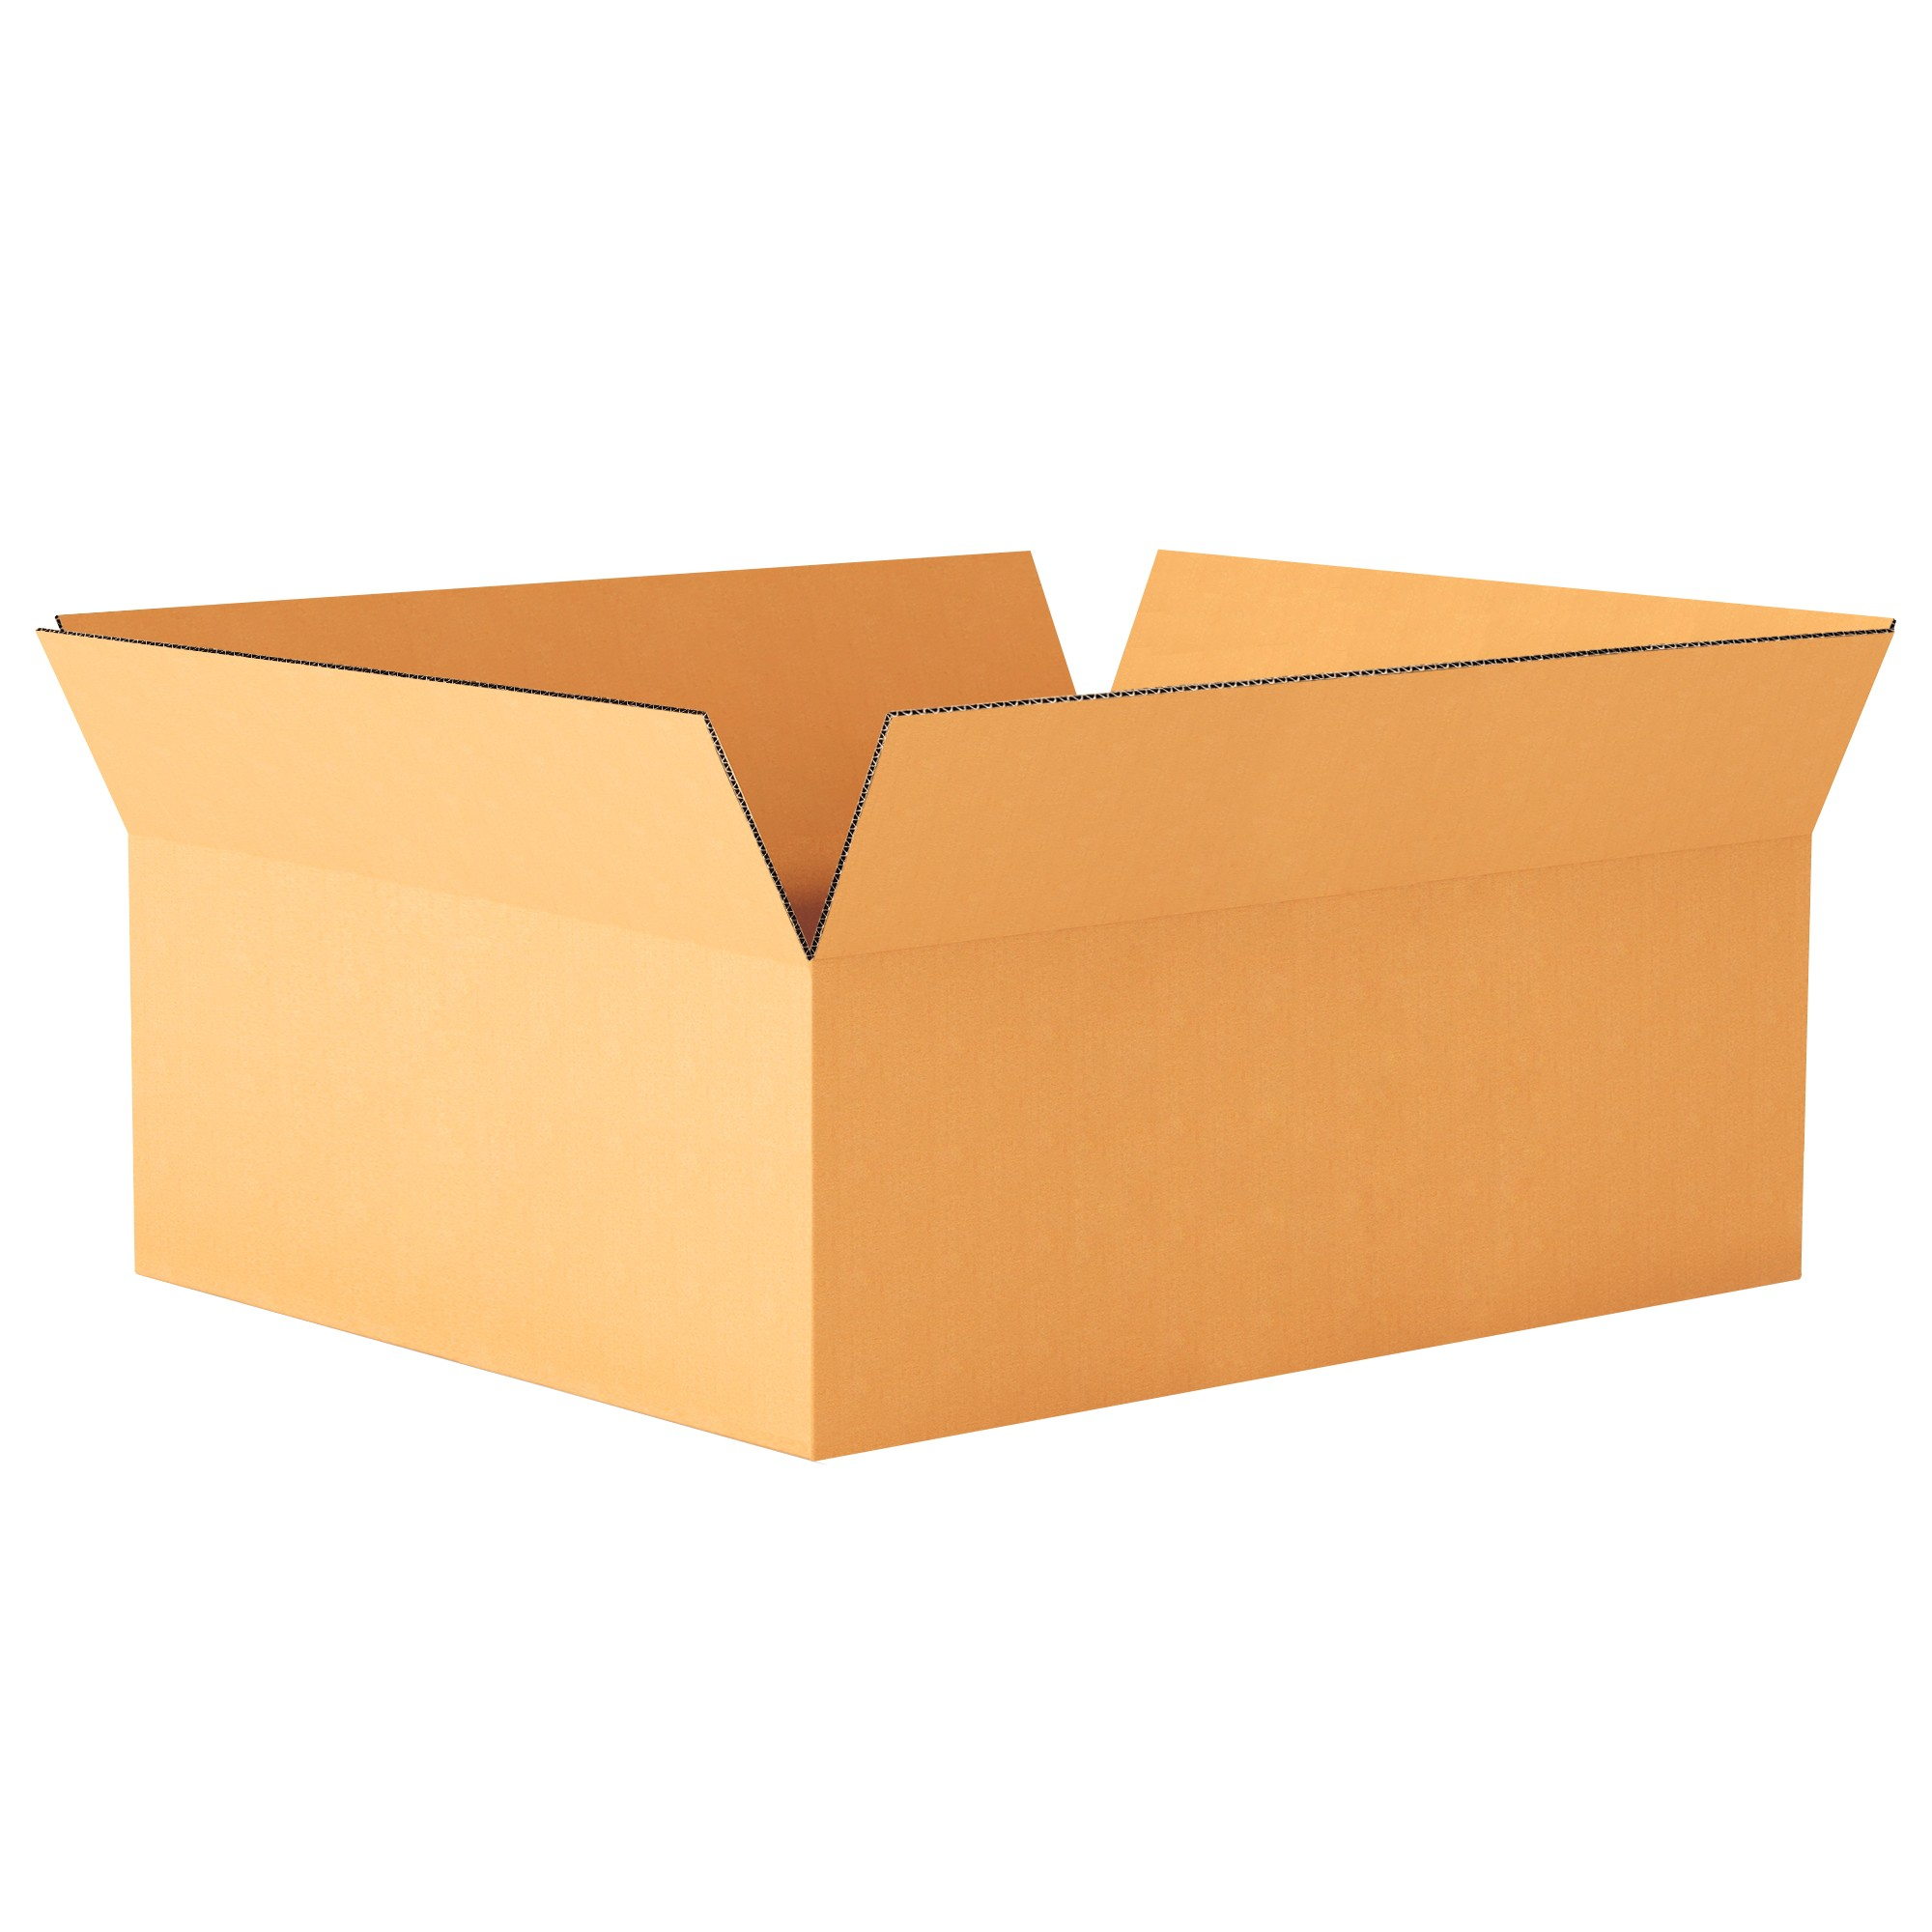 """TOTALPACK® 21 1/2 x 14 1/2 x 13"""" Single Wall Corrugated Boxes 15 Units"""